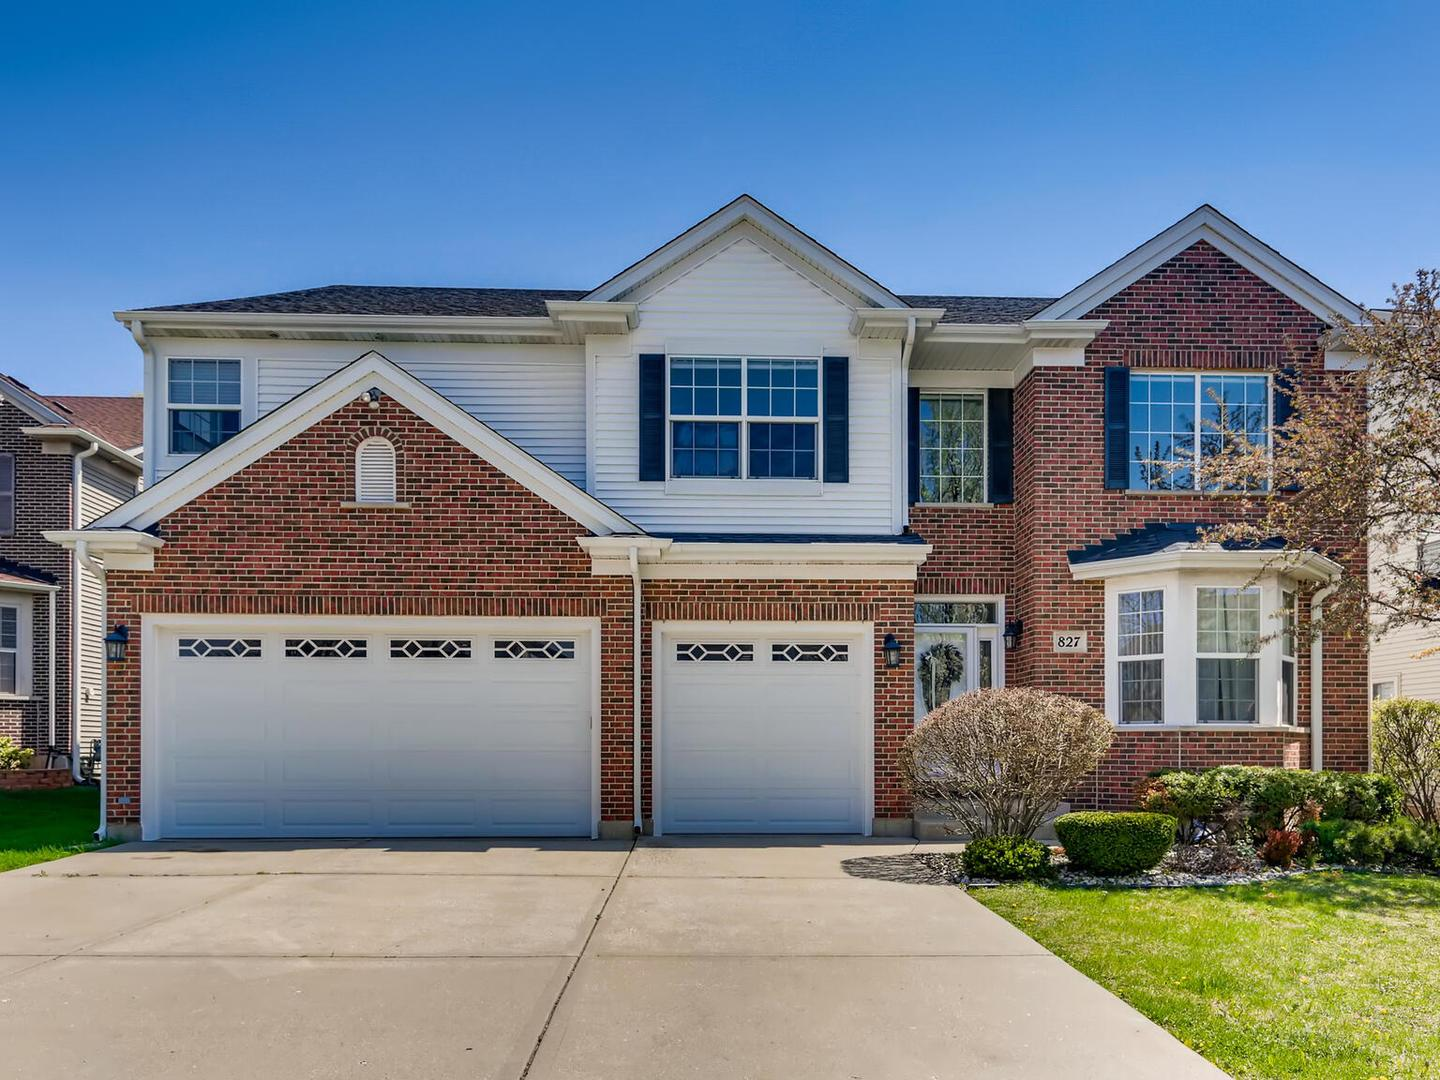 827 SARA Court, Elk Grove Village, IL 60007 - #: 11089156